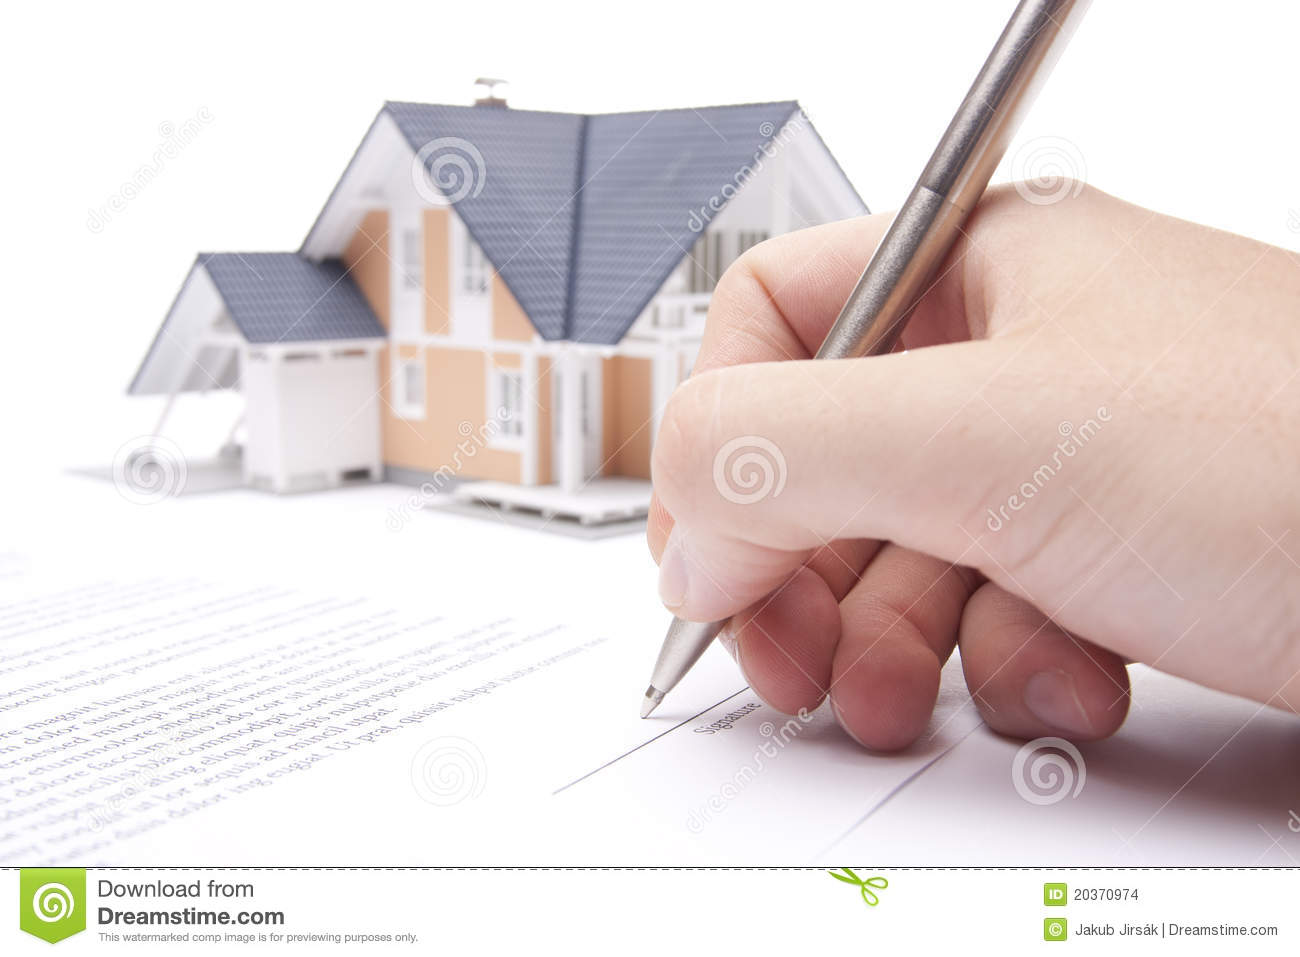 contract of a mortgage A document used by the mortgagee (the lender) to secure a loan in the mortgagor's (the borrower) purchase of real estate.